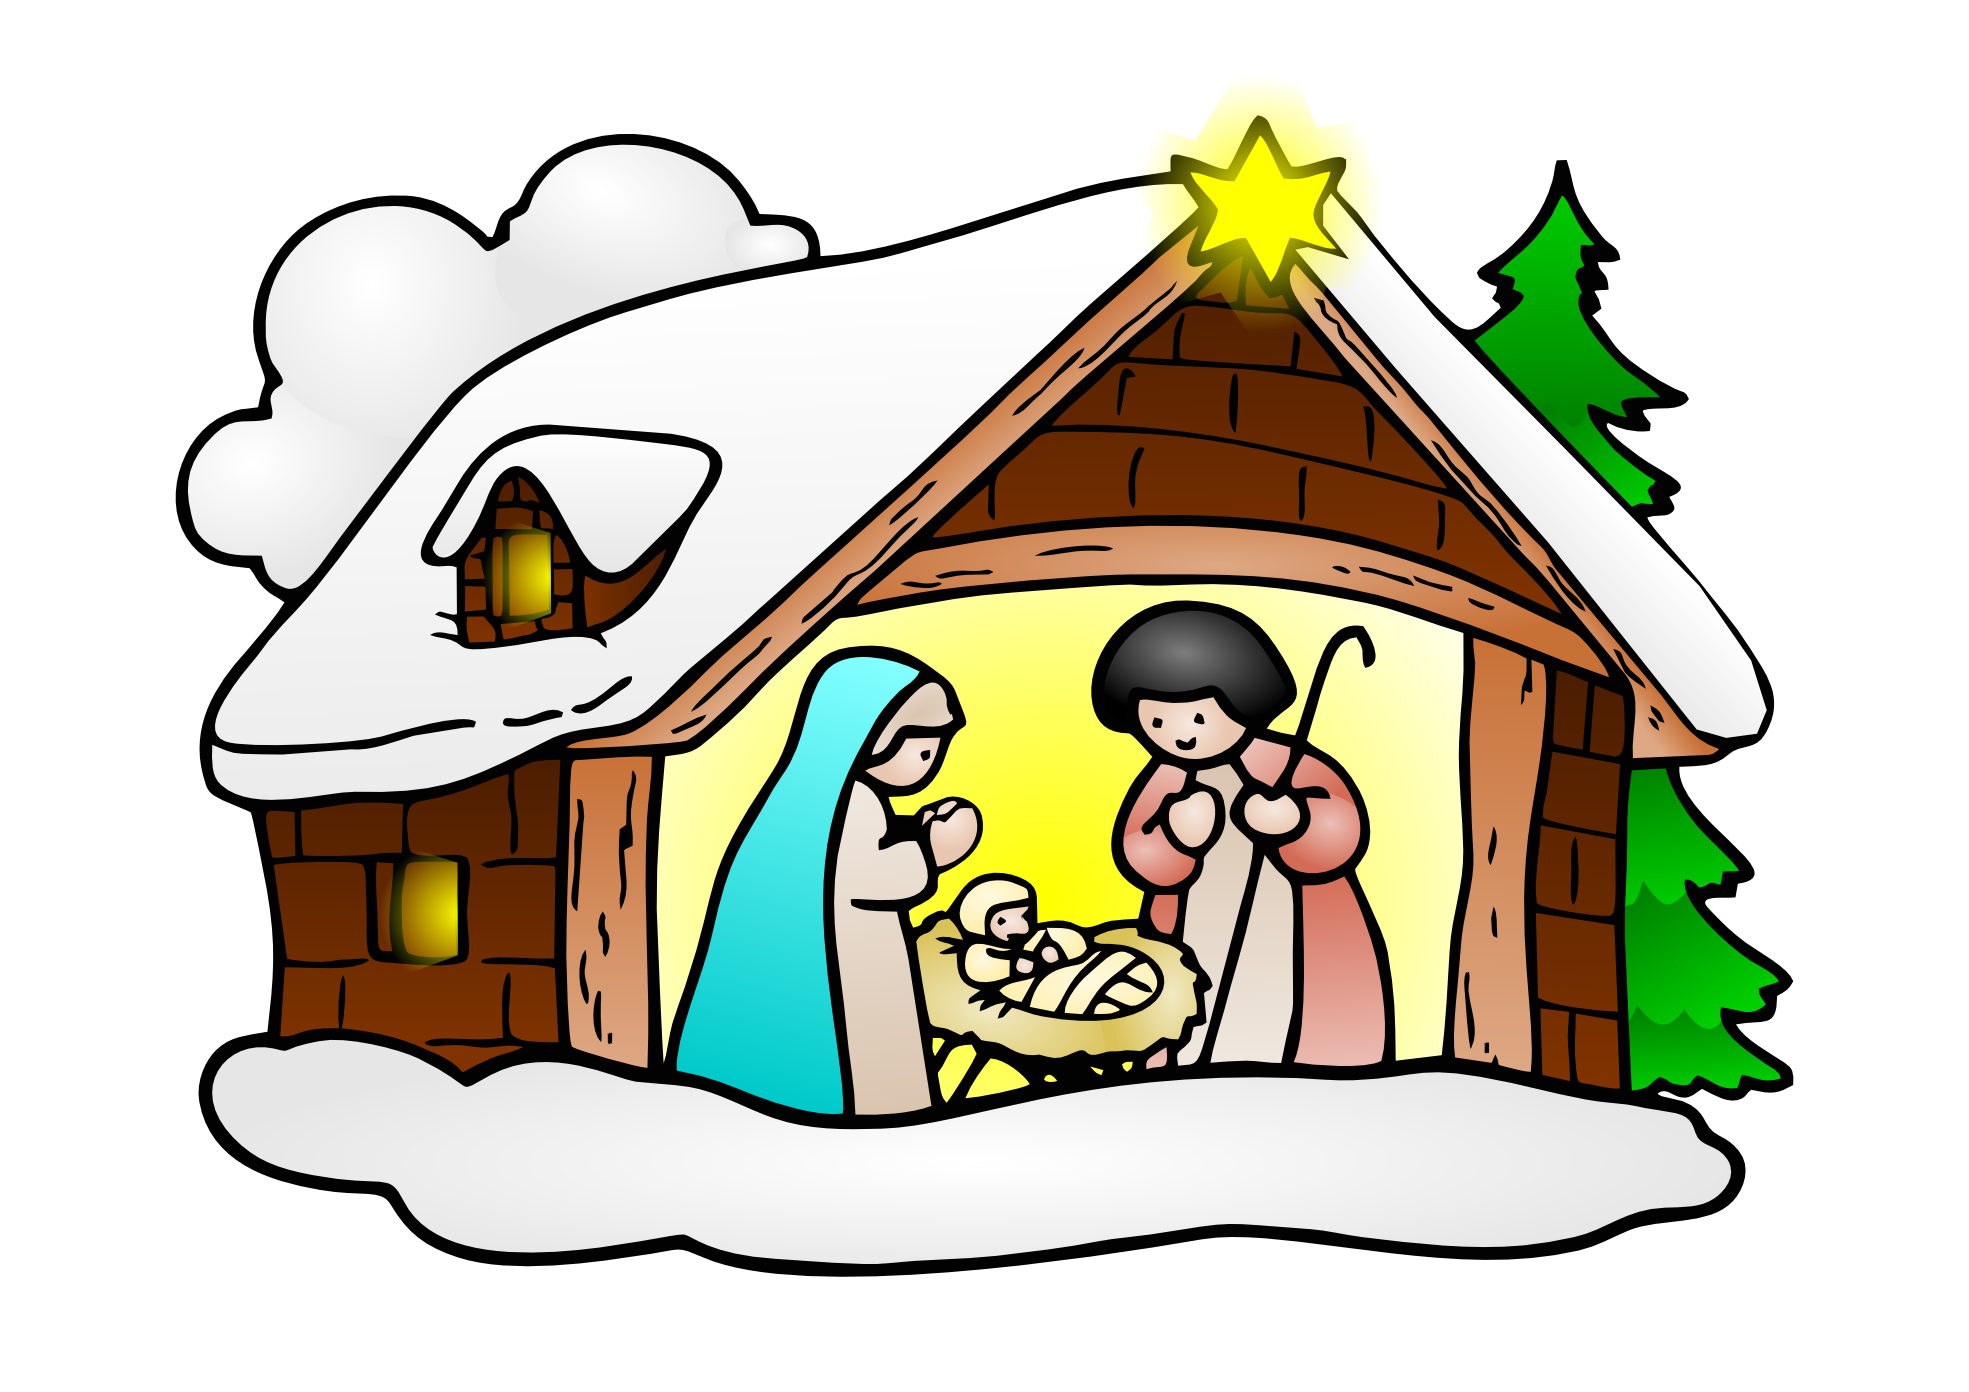 Crib drawing animated. Cartoon baby jesus group